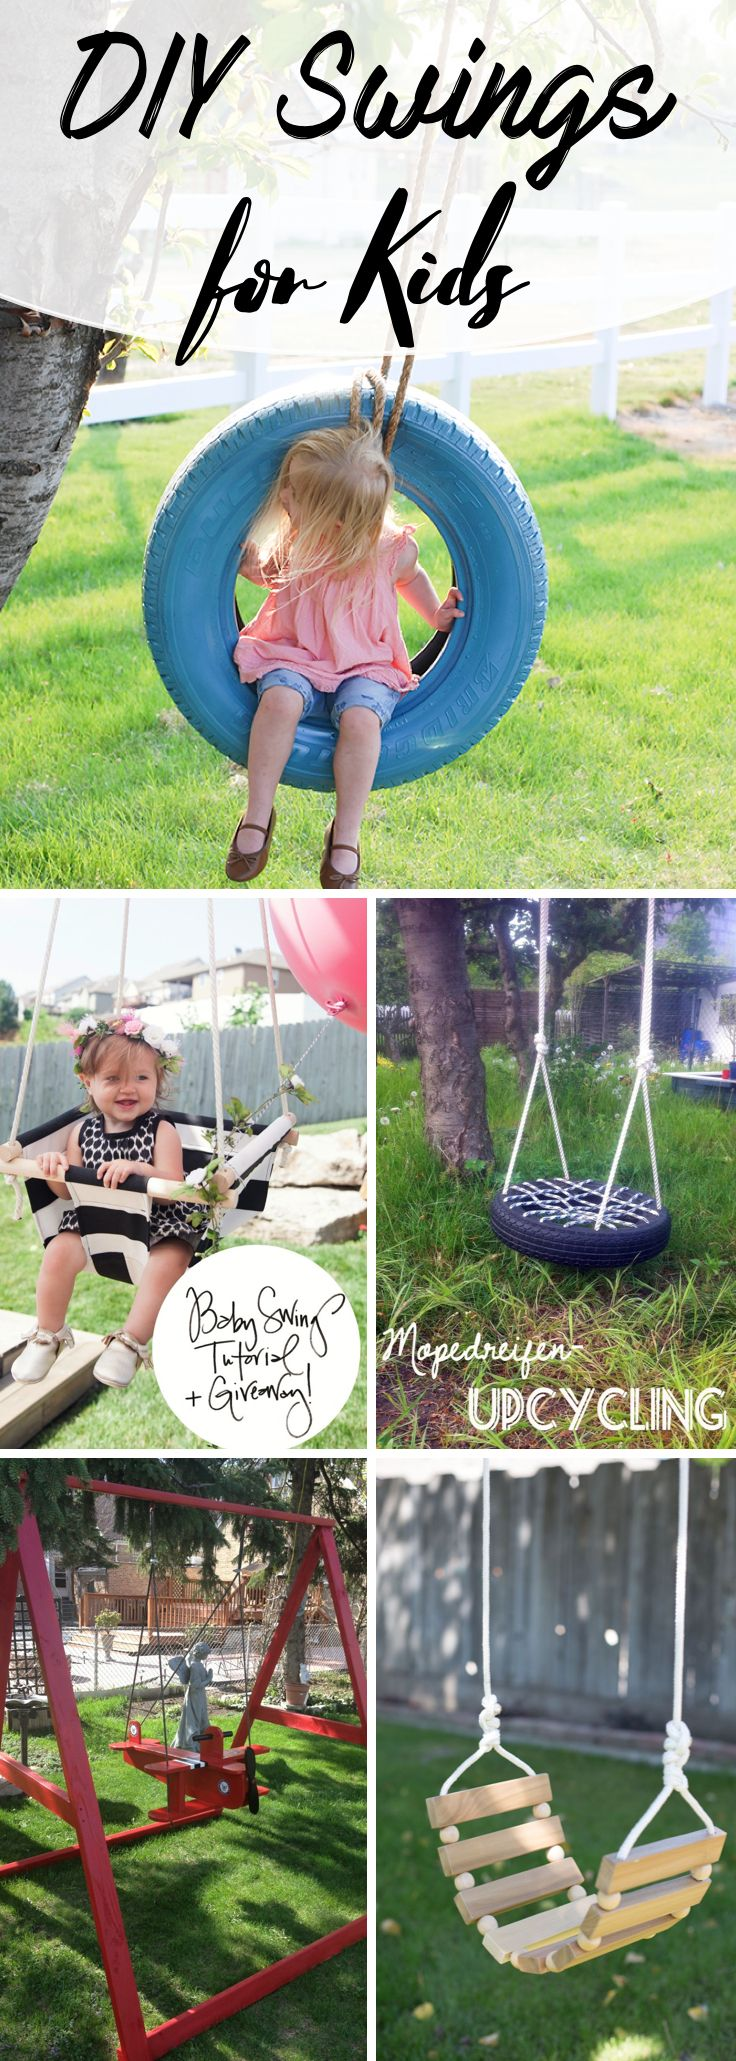 10+ Best Ideas About Diy Swing On Pinterest | Swing Sets For Kids ... 15 Tolle Handgemachte Veranda Schaukel Designs